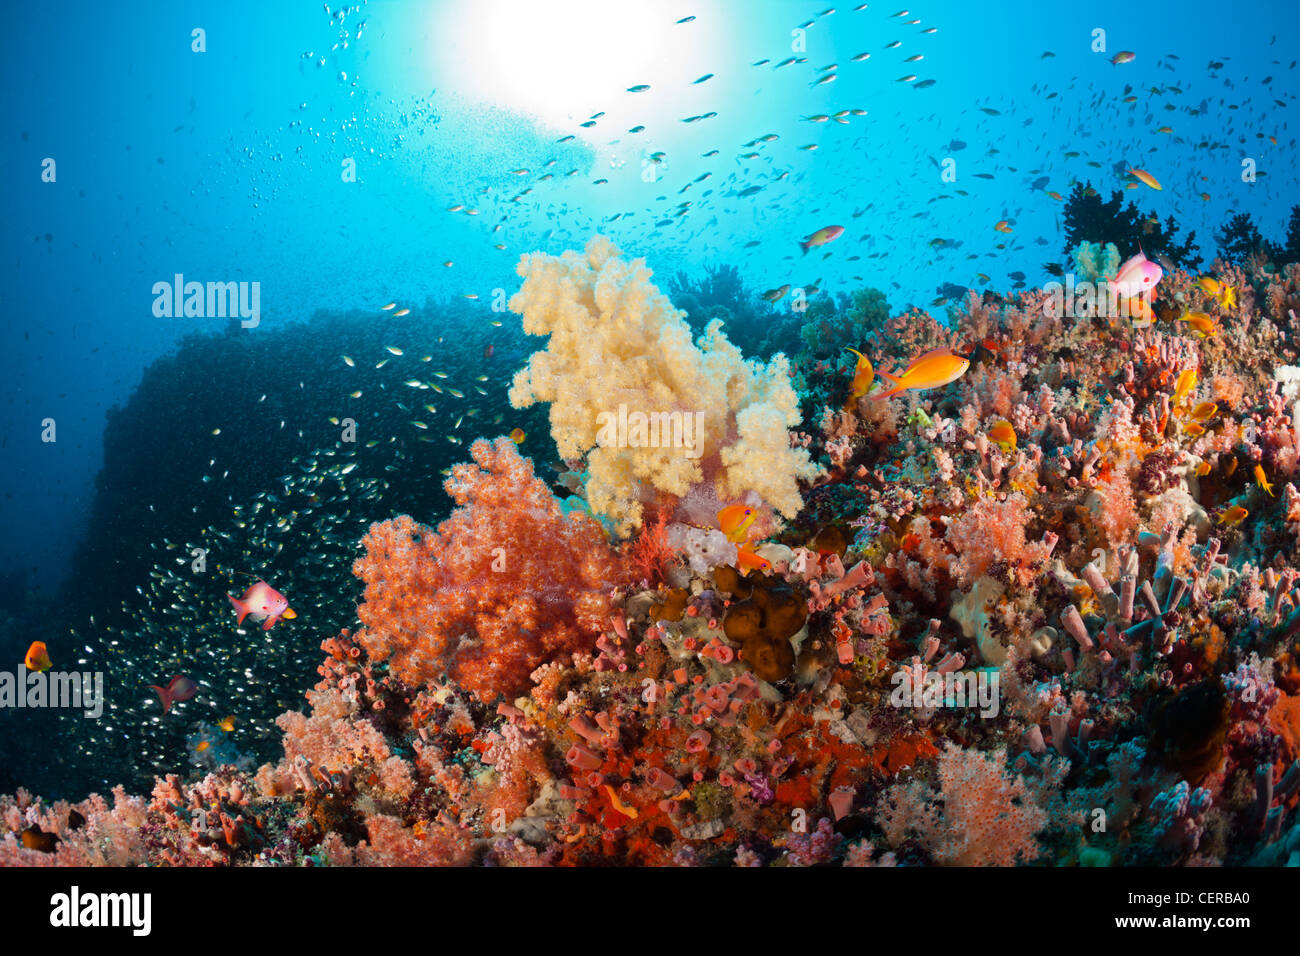 Soft Coral Reef, North Male Atoll, Indian Ocean, Maldives - Stock Image